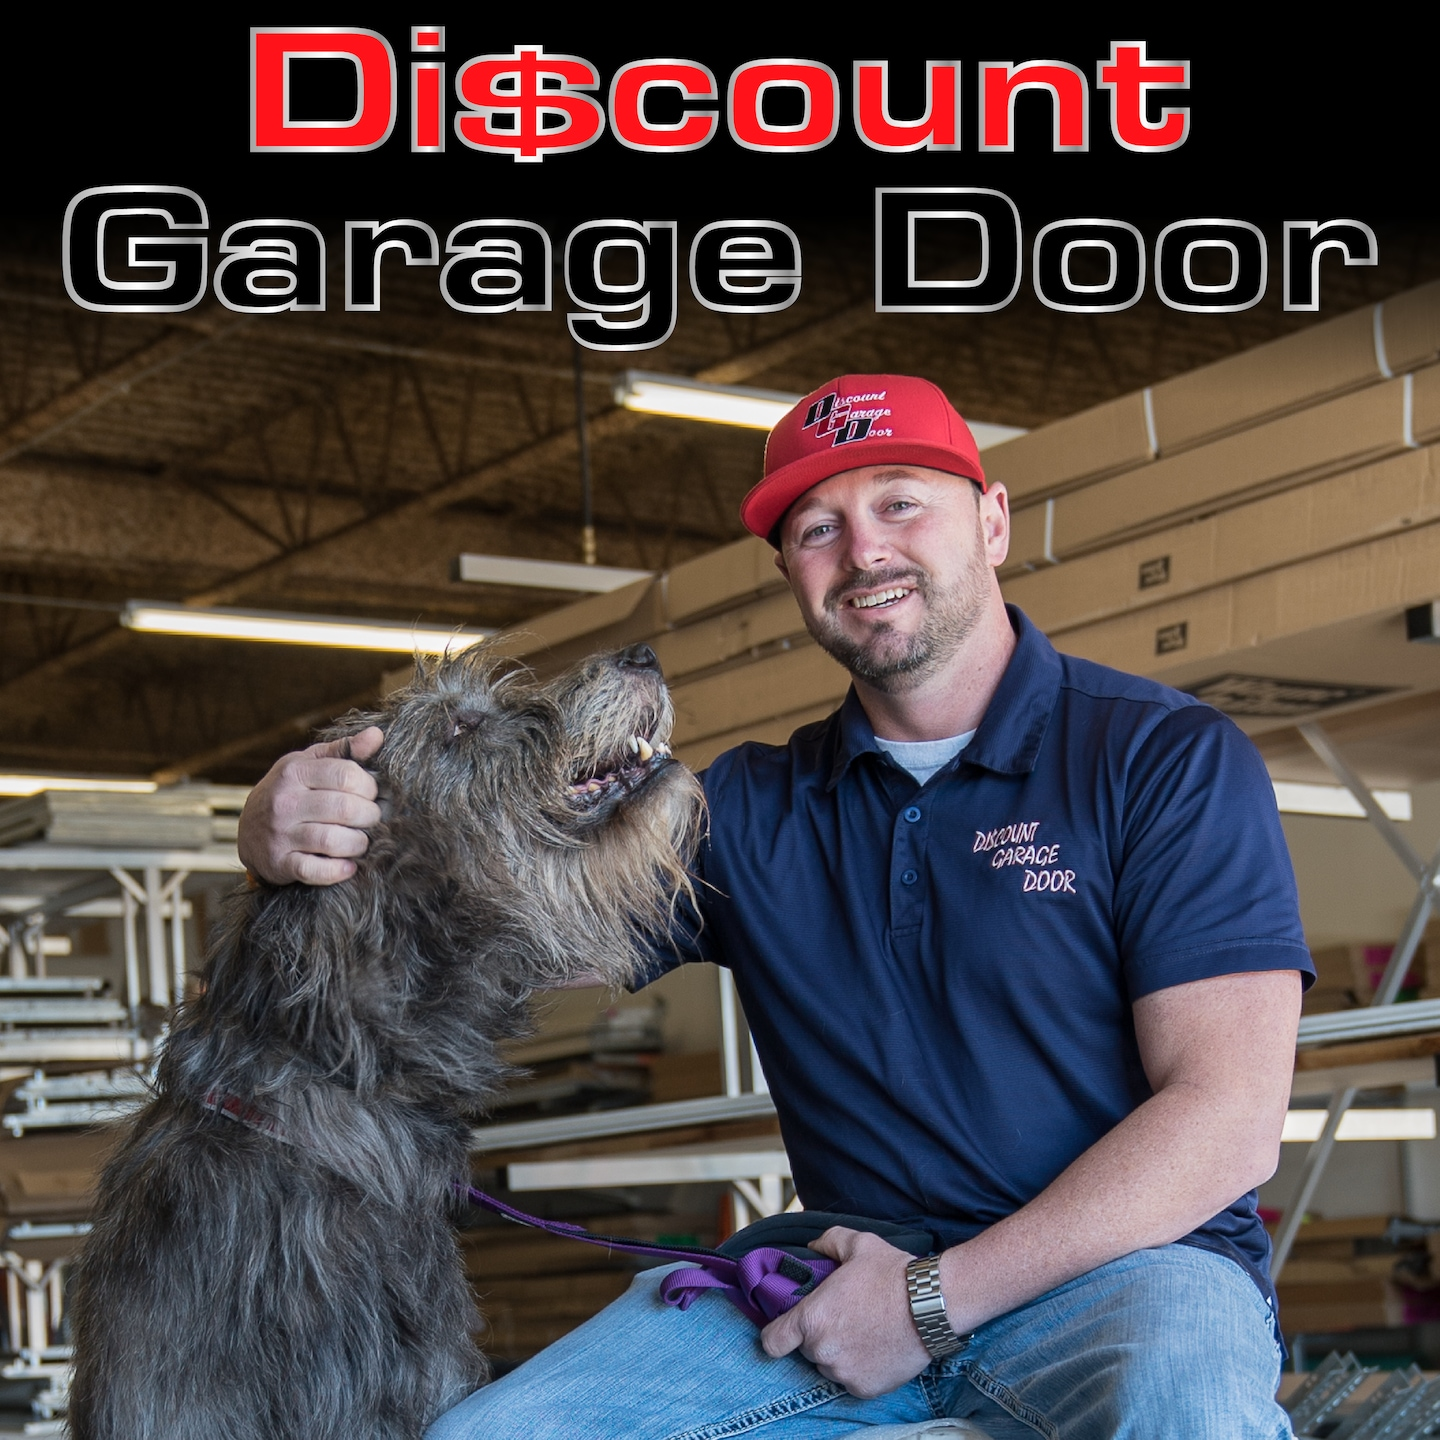 Discount Garage Door (OKC)